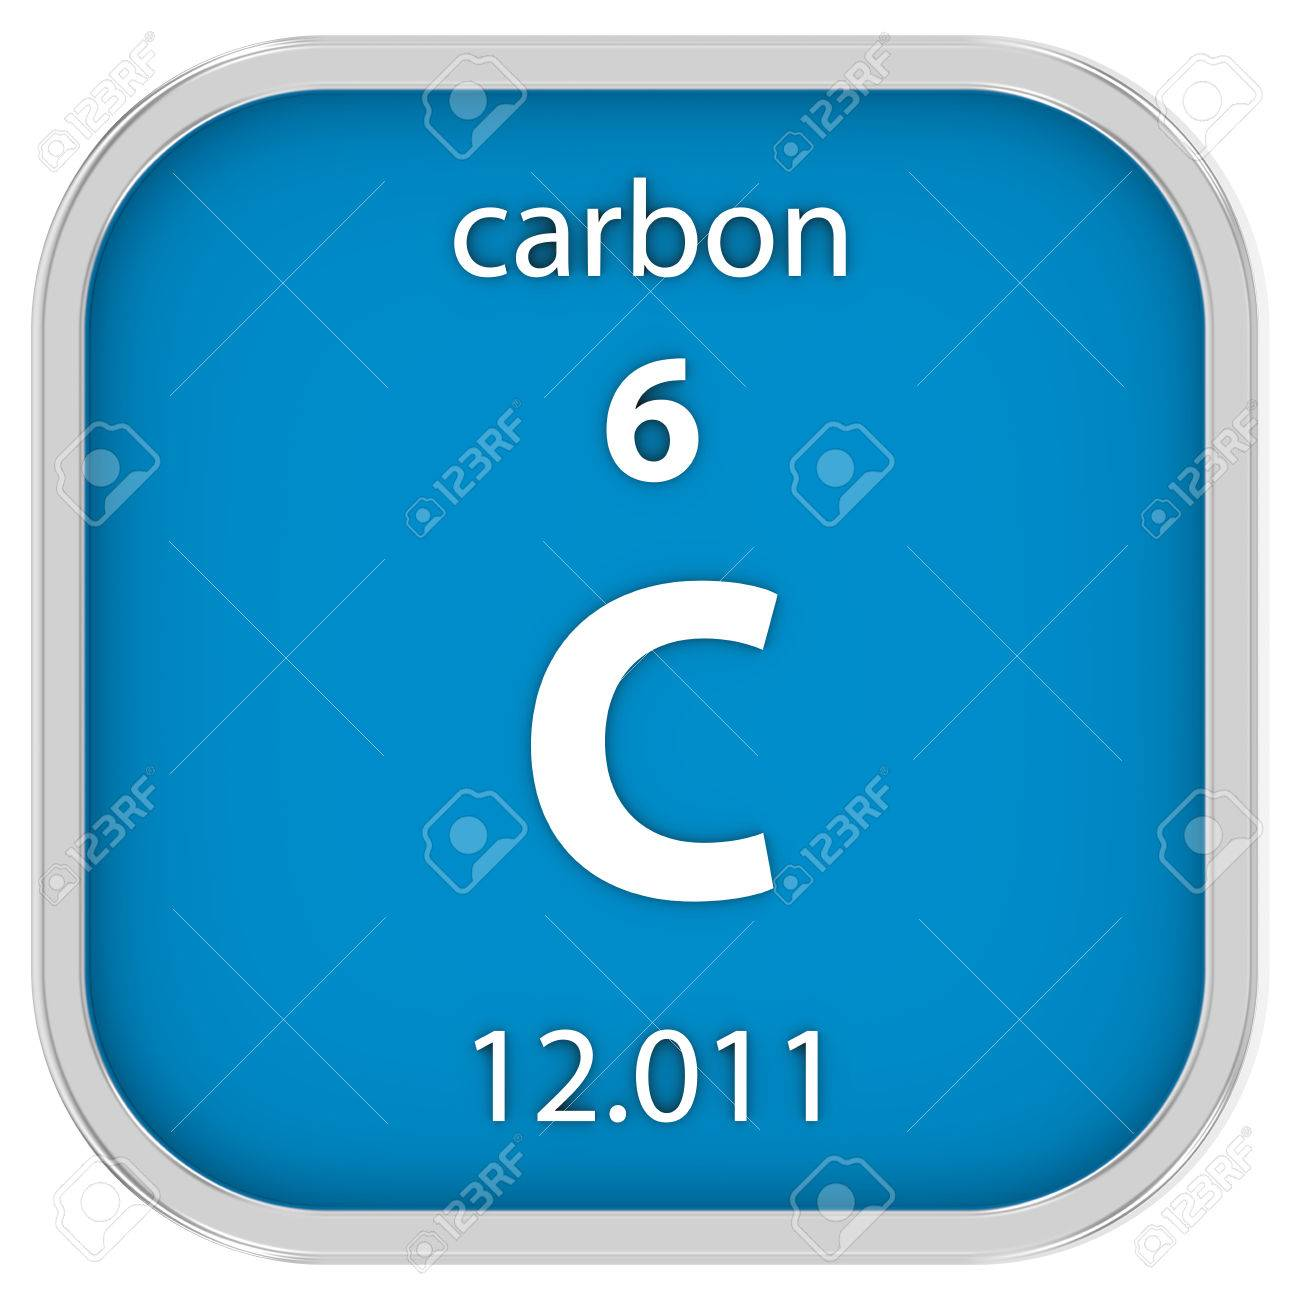 Carbon material on the periodic table part of a series stock photo carbon material on the periodic table part of a series stock photo 40845526 urtaz Gallery